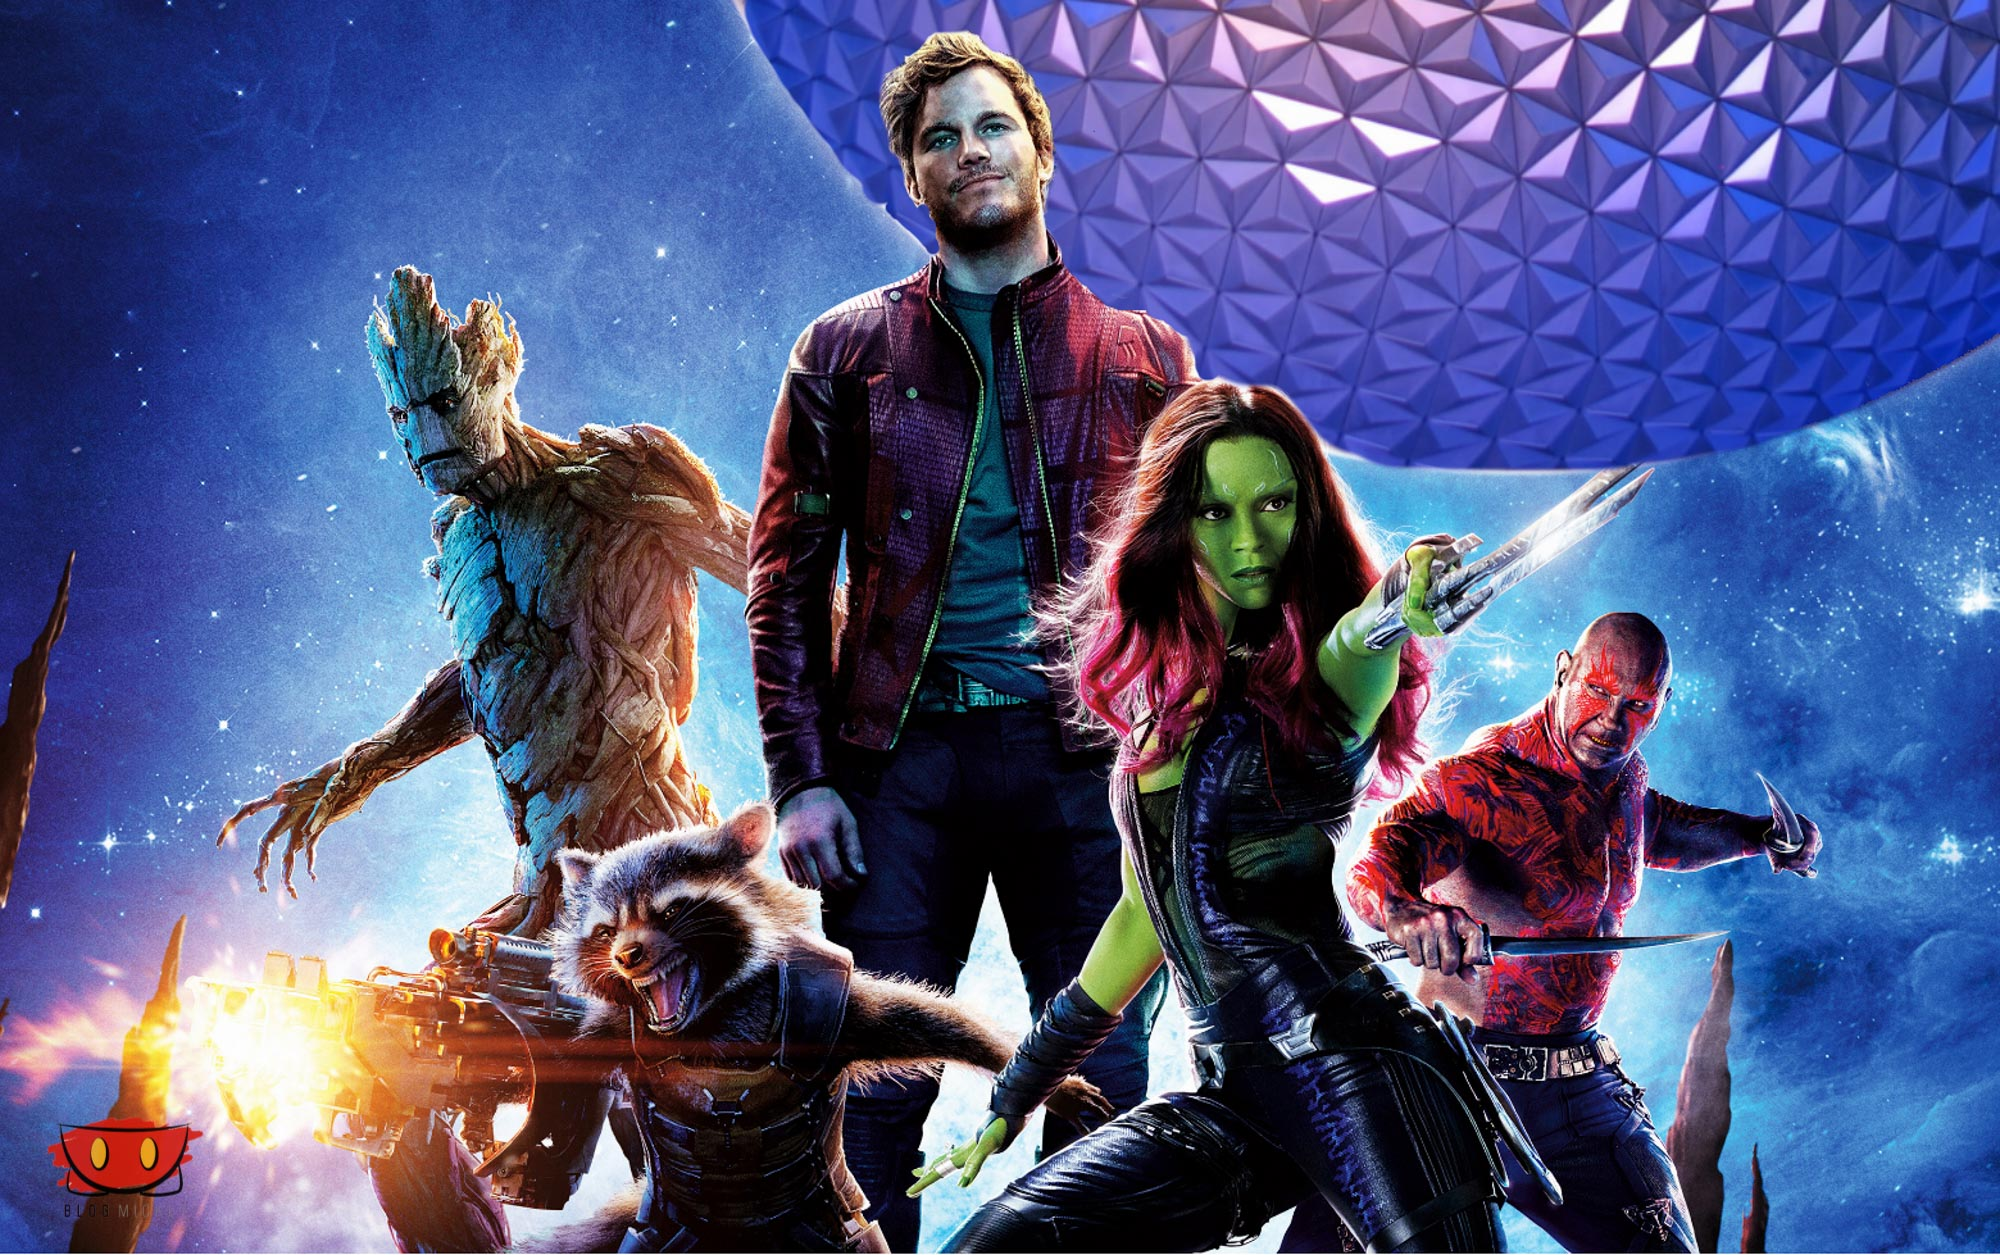 Guardians of the Galaxy - Epcot